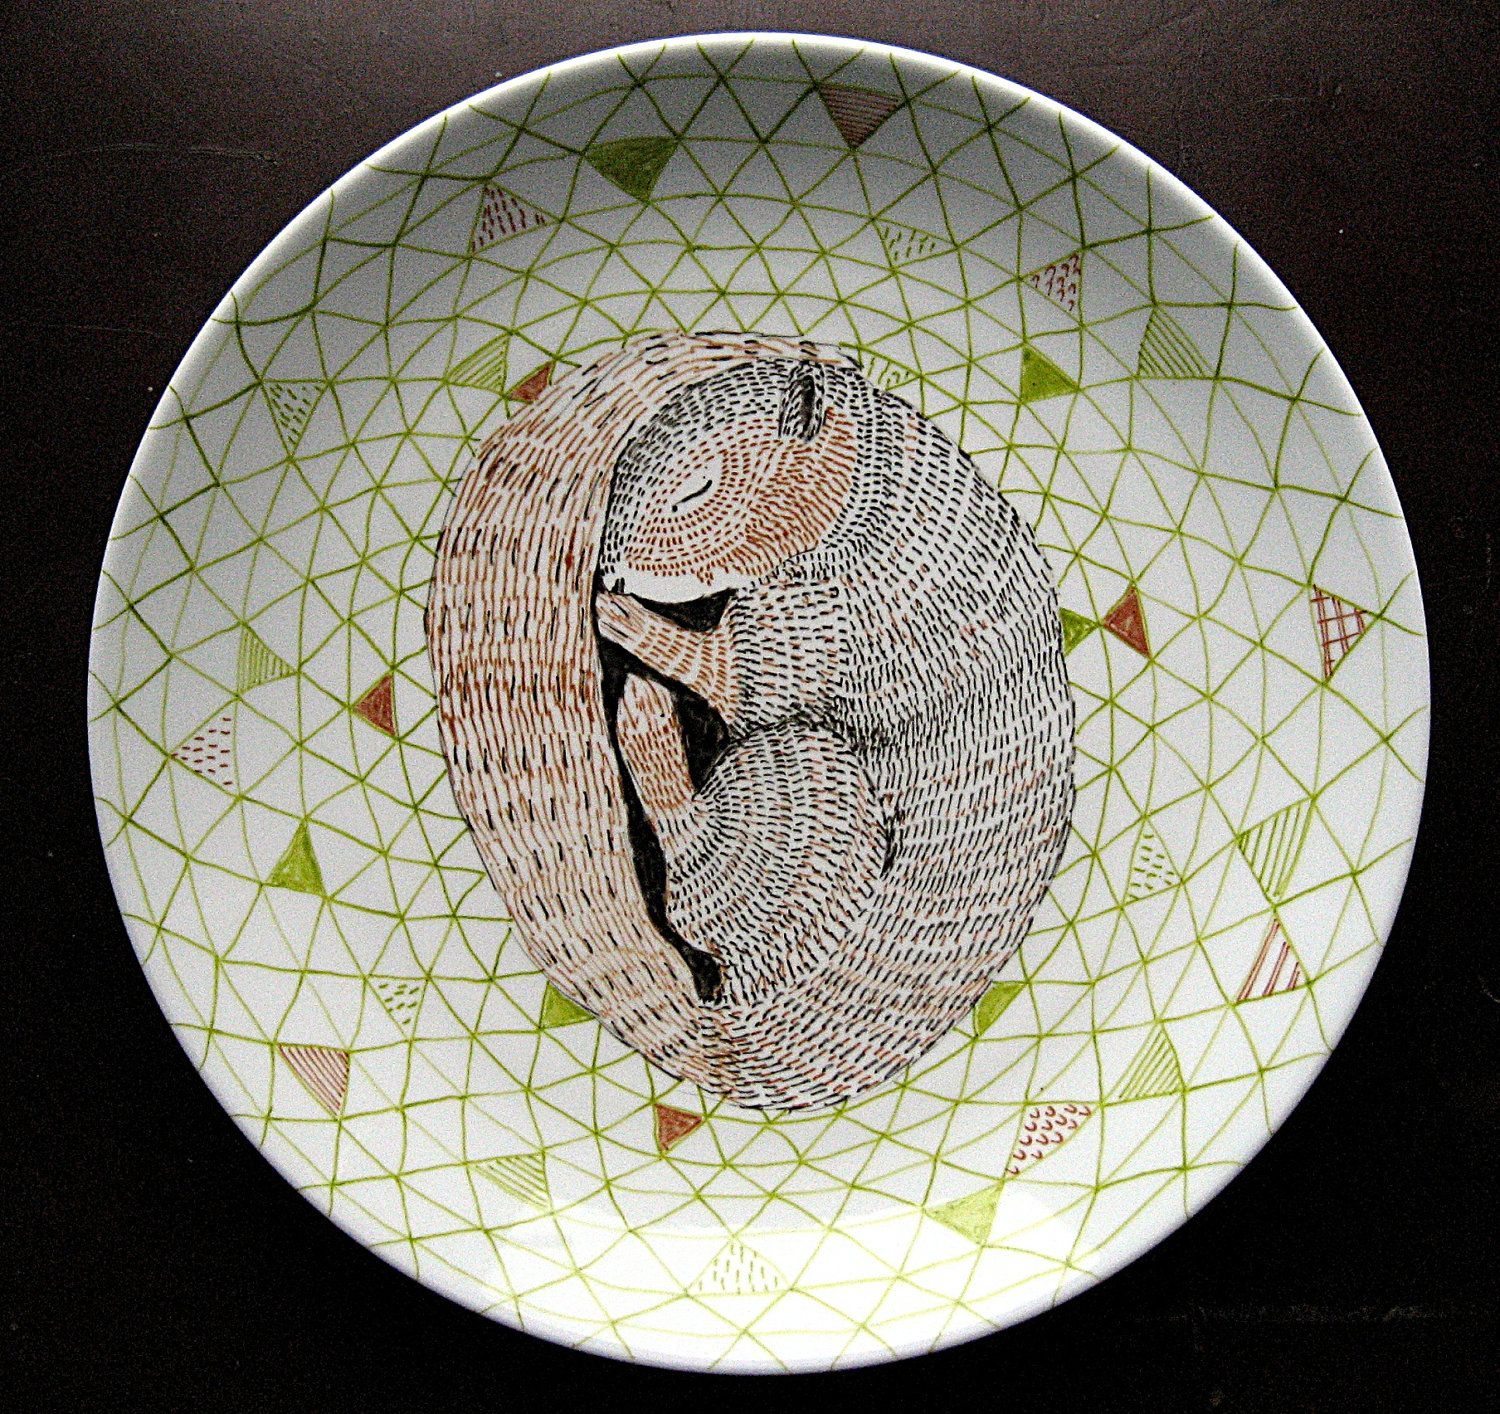 Sleeping Squirrel Woodland Geometric Design Decorative Plate Hand Illustrated Porcelain 65 00 Via Etsy Hand Illustration Ceramic Painting Squirrel